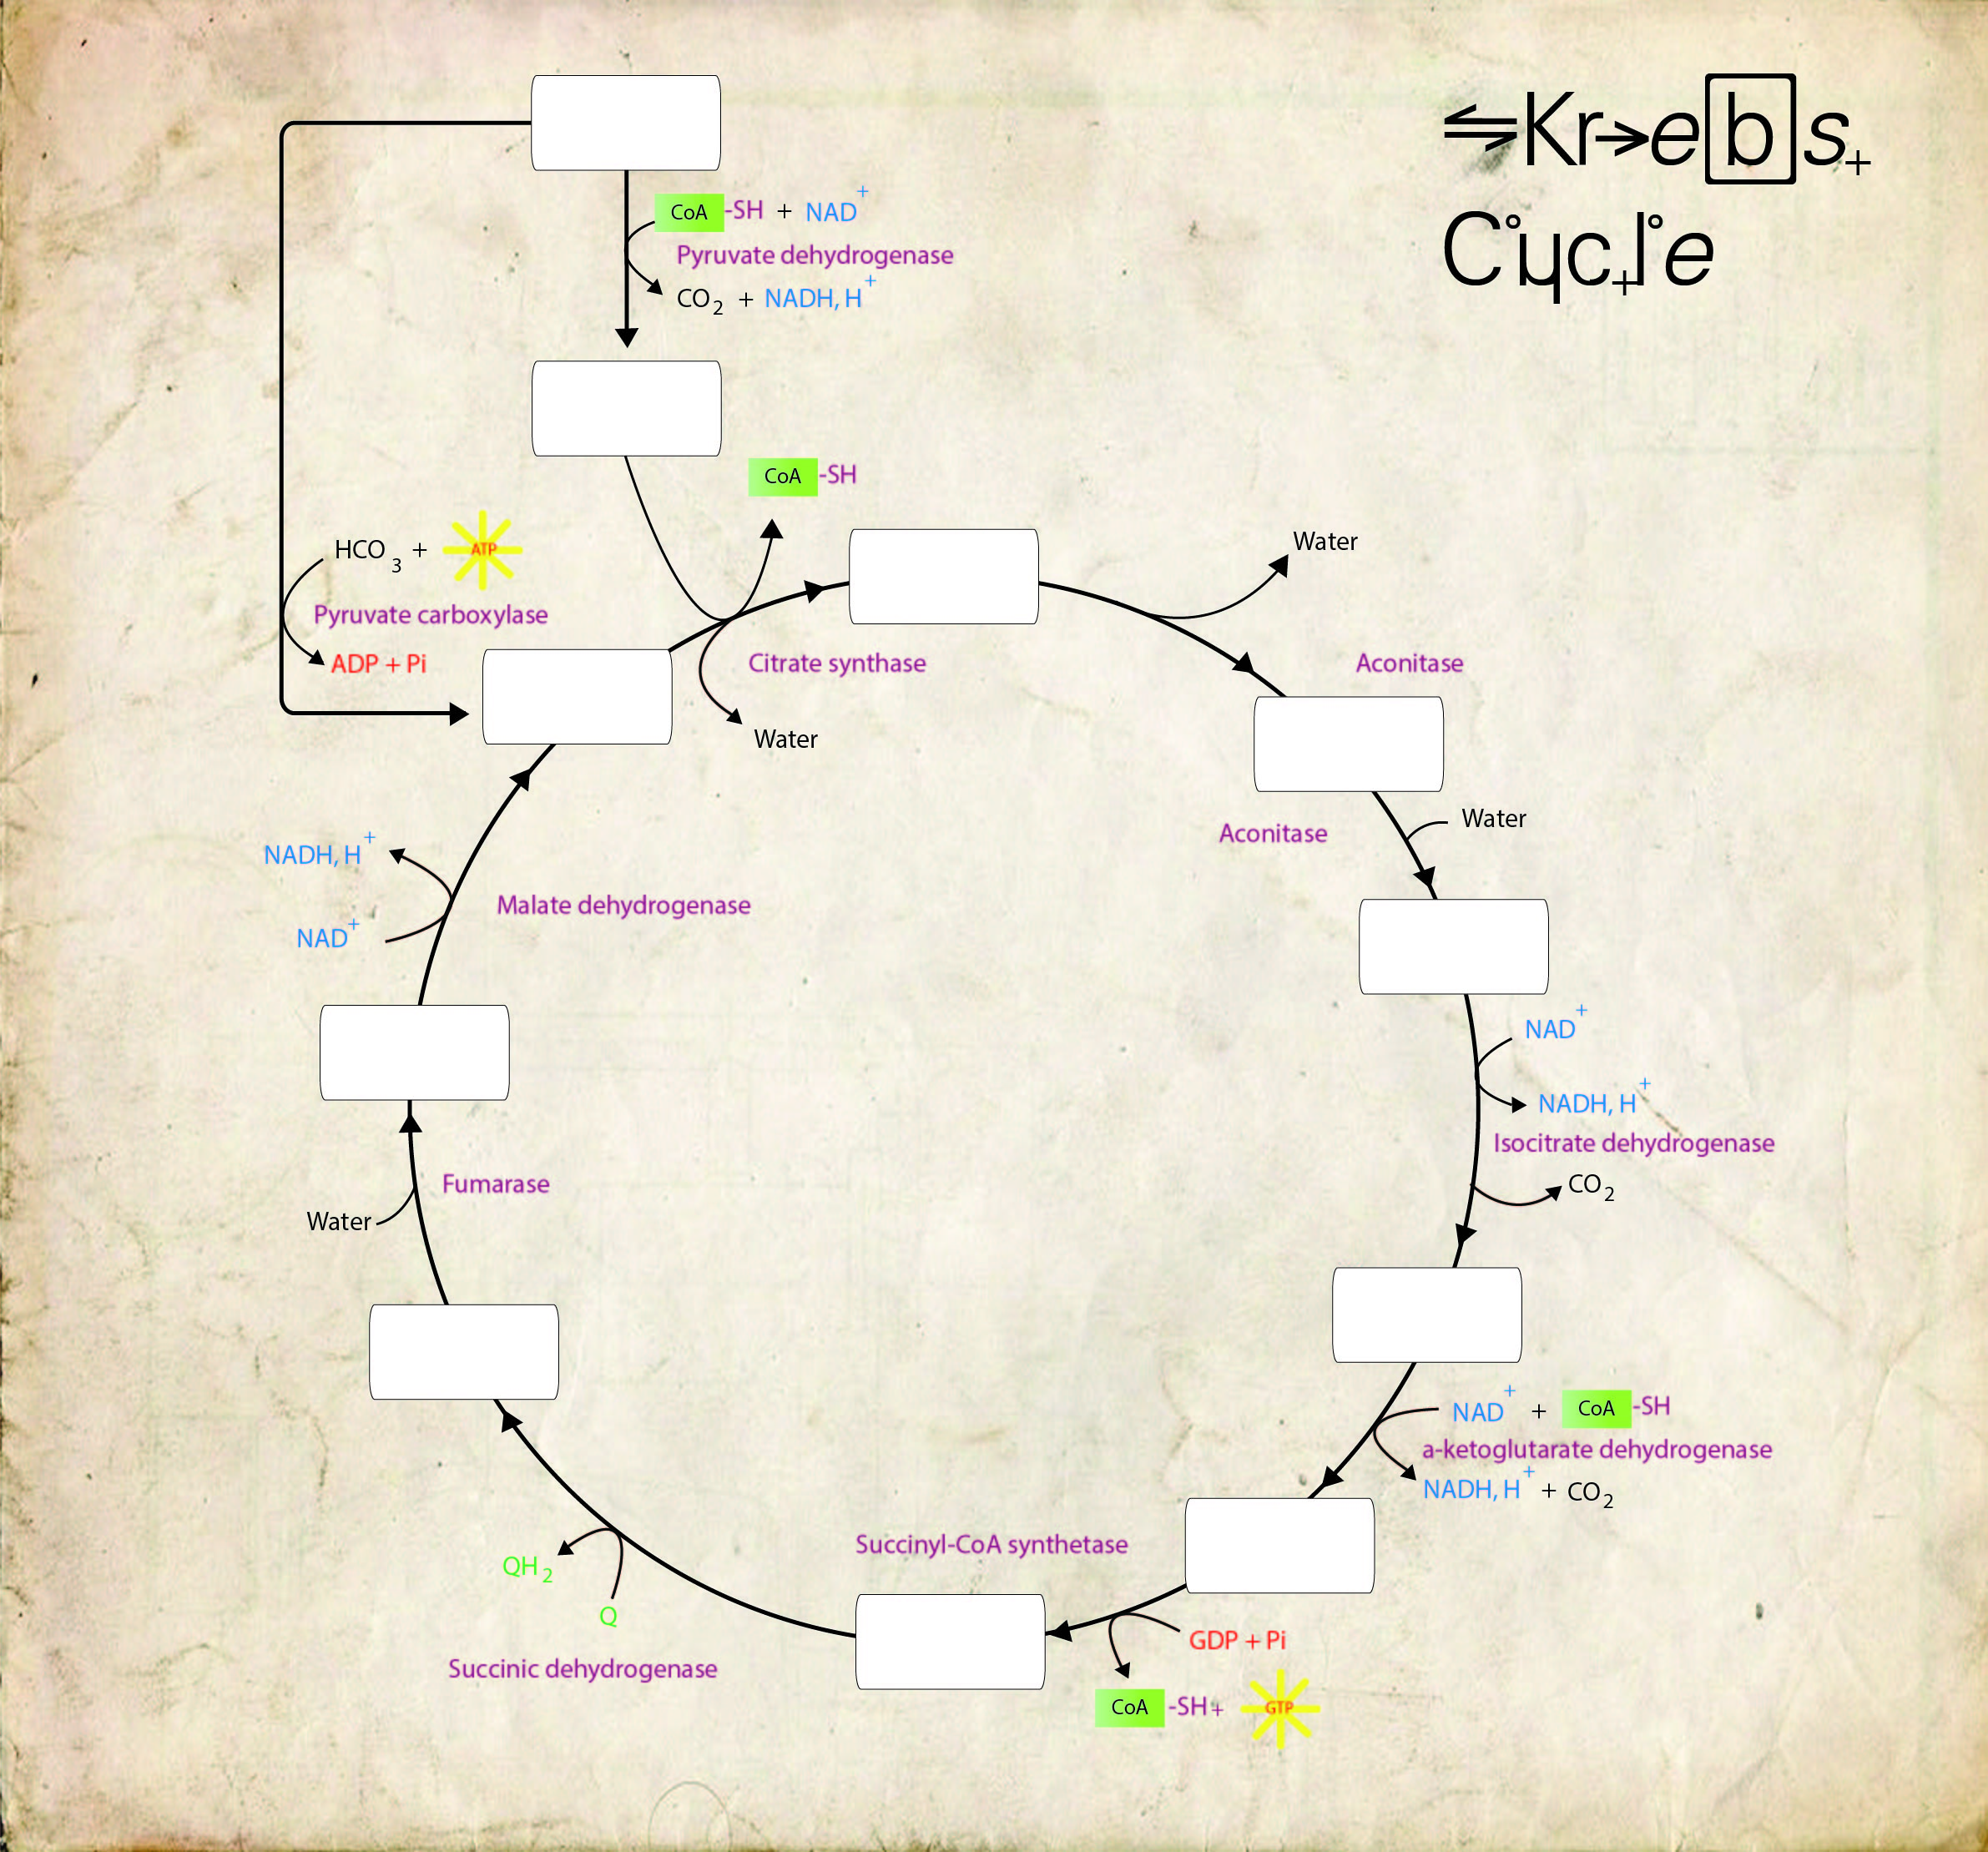 explain krebs cycle with diagram 4 pin connector wiring year 3 innovation graphic design illustration page 2